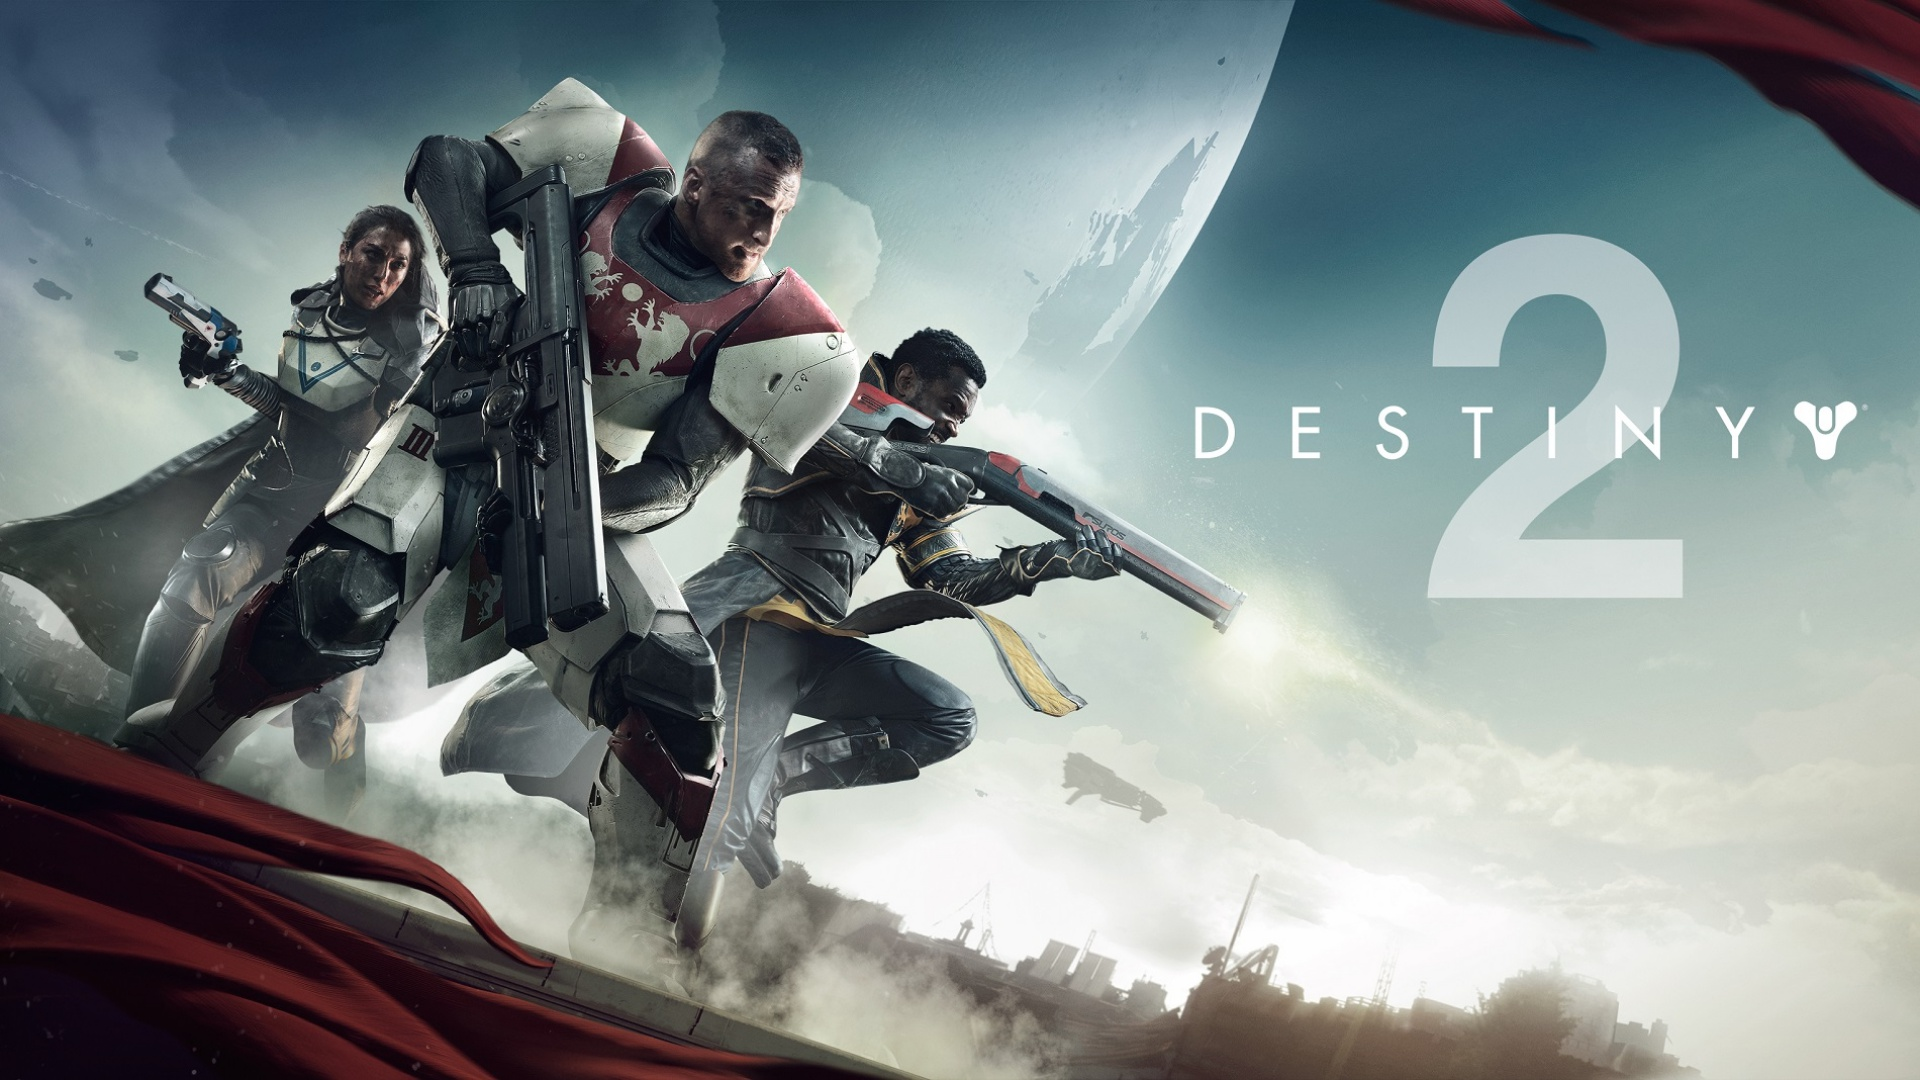 'Destiny 2': Co-op Horde Mode and free DLC maps teased